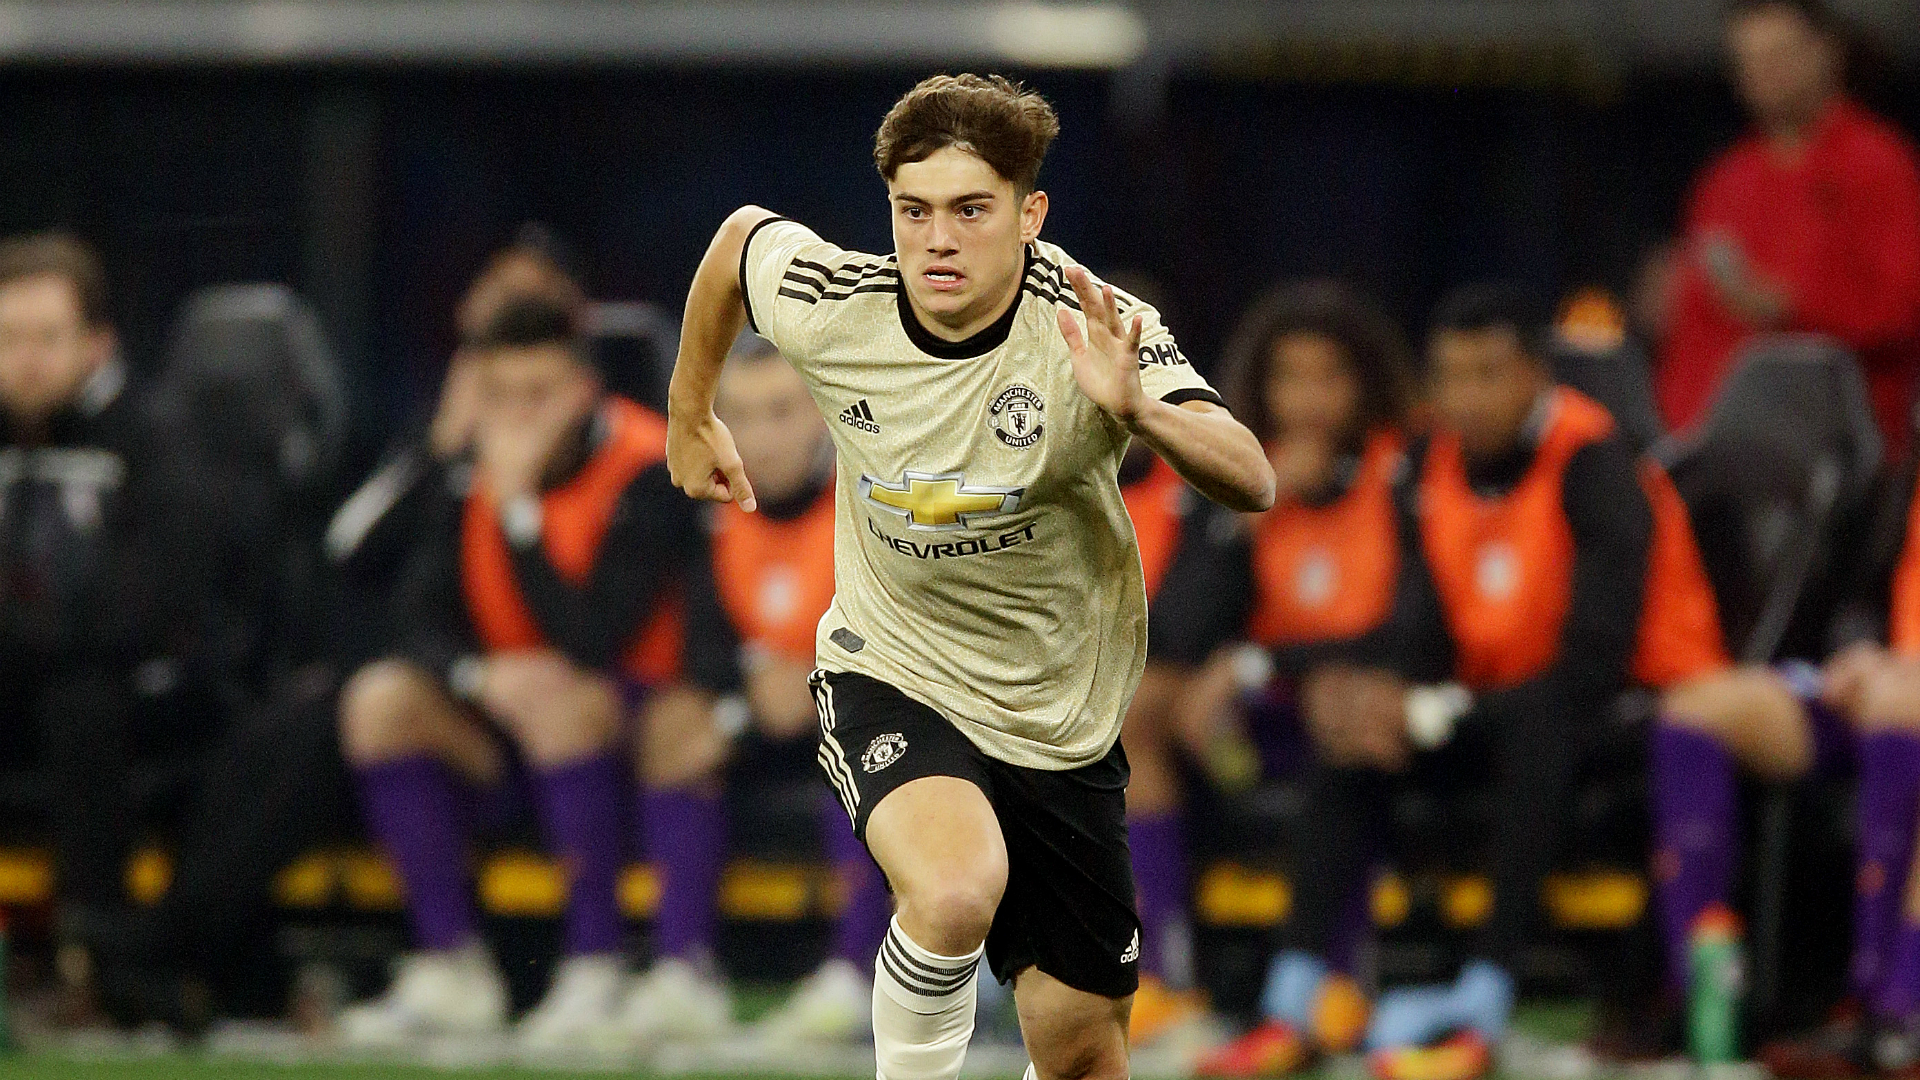 Every young winger looks up to him - James aspires to be like Giggs